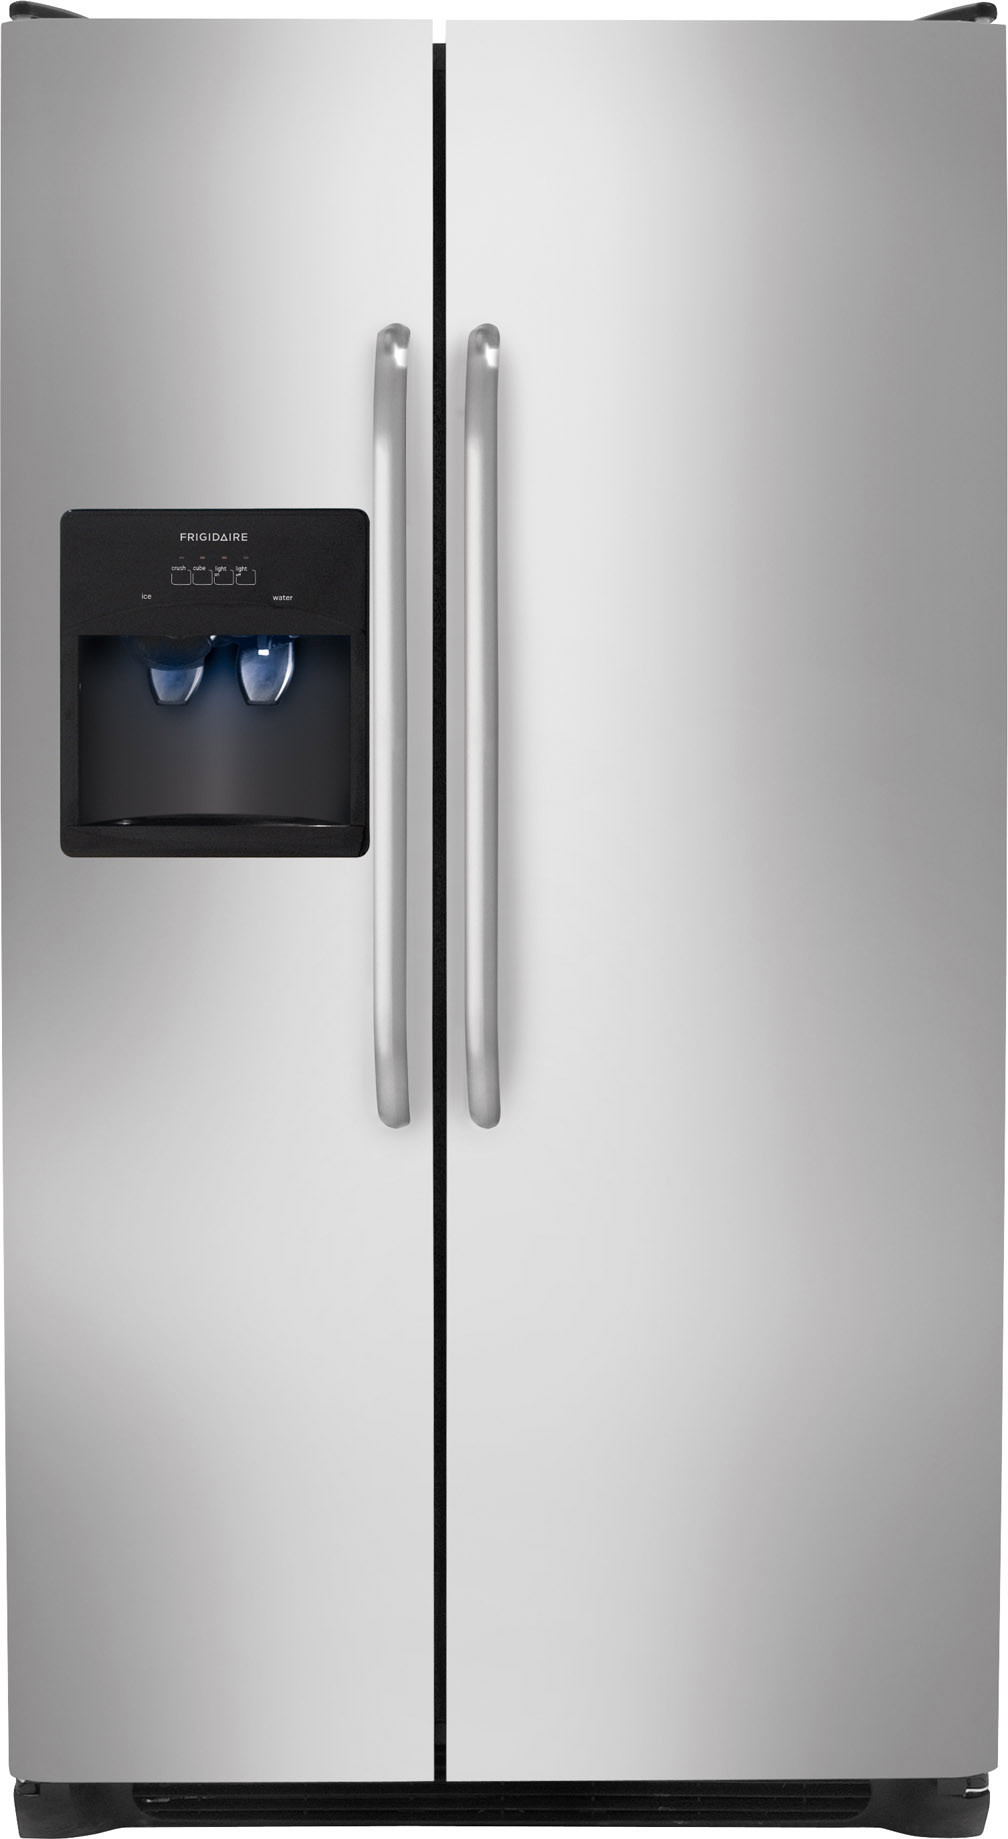 Side by side refrigerator no water dispenser - Side By Side Refrigerator No Water Dispenser 2